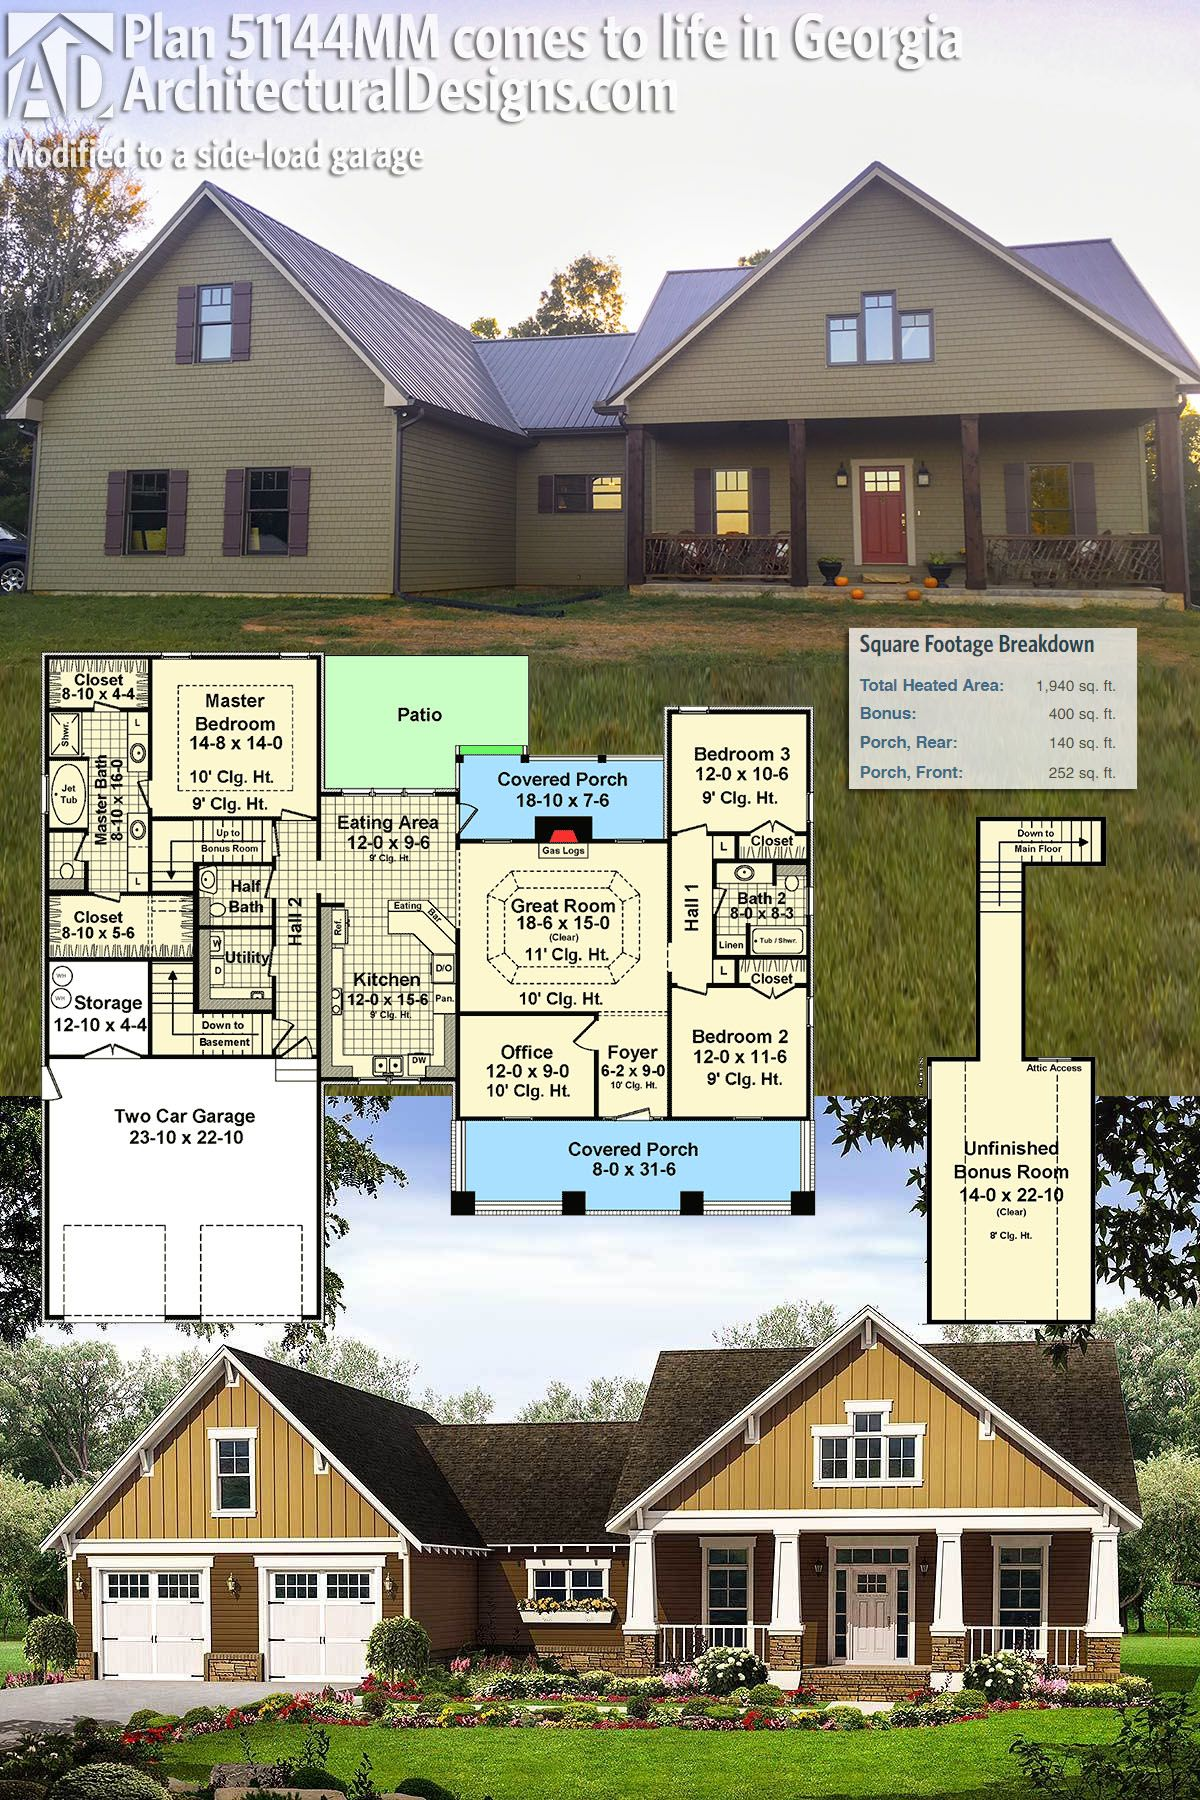 Plan MM 3 Bed Bungalow With Bonus and Basement